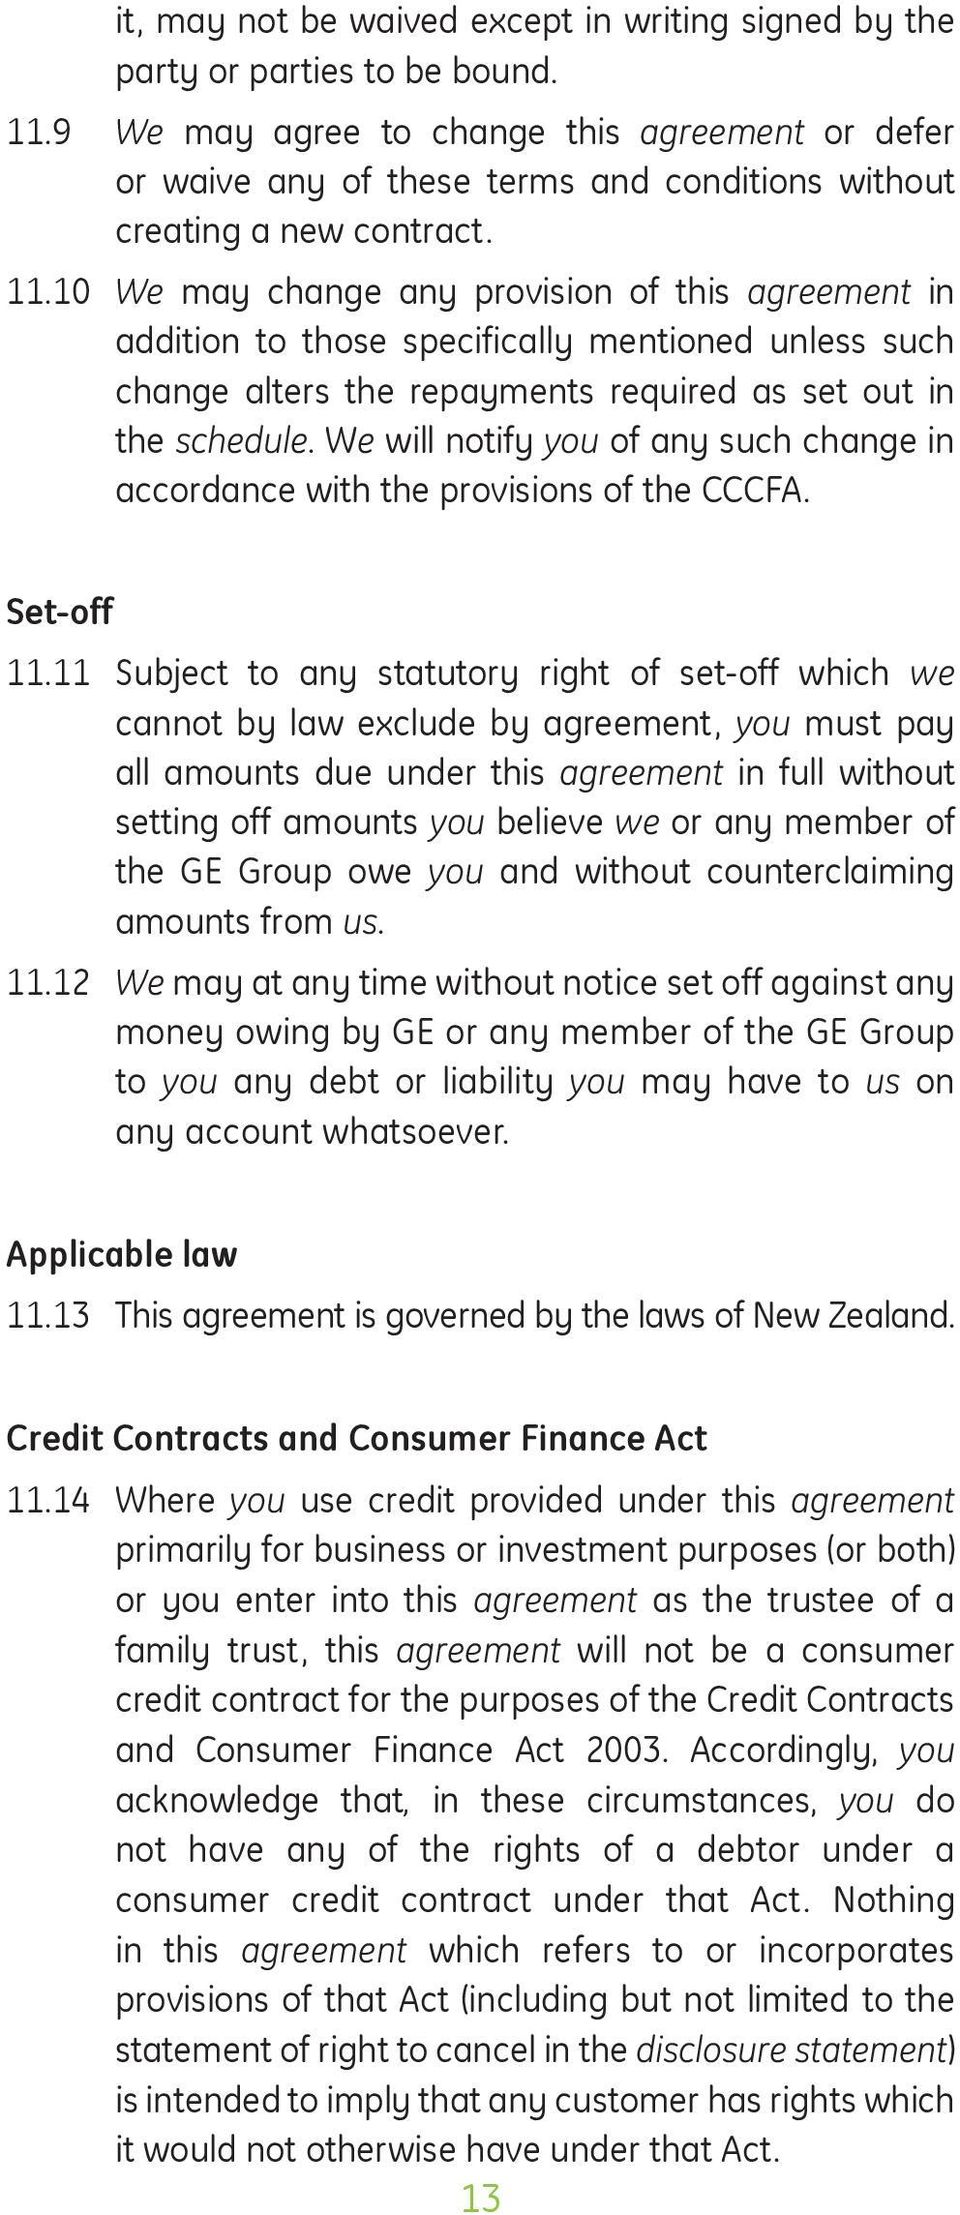 10 We may change any provision of this agreement in addition to those specifically mentioned unless such change alters the repayments required as set out in the schedule.